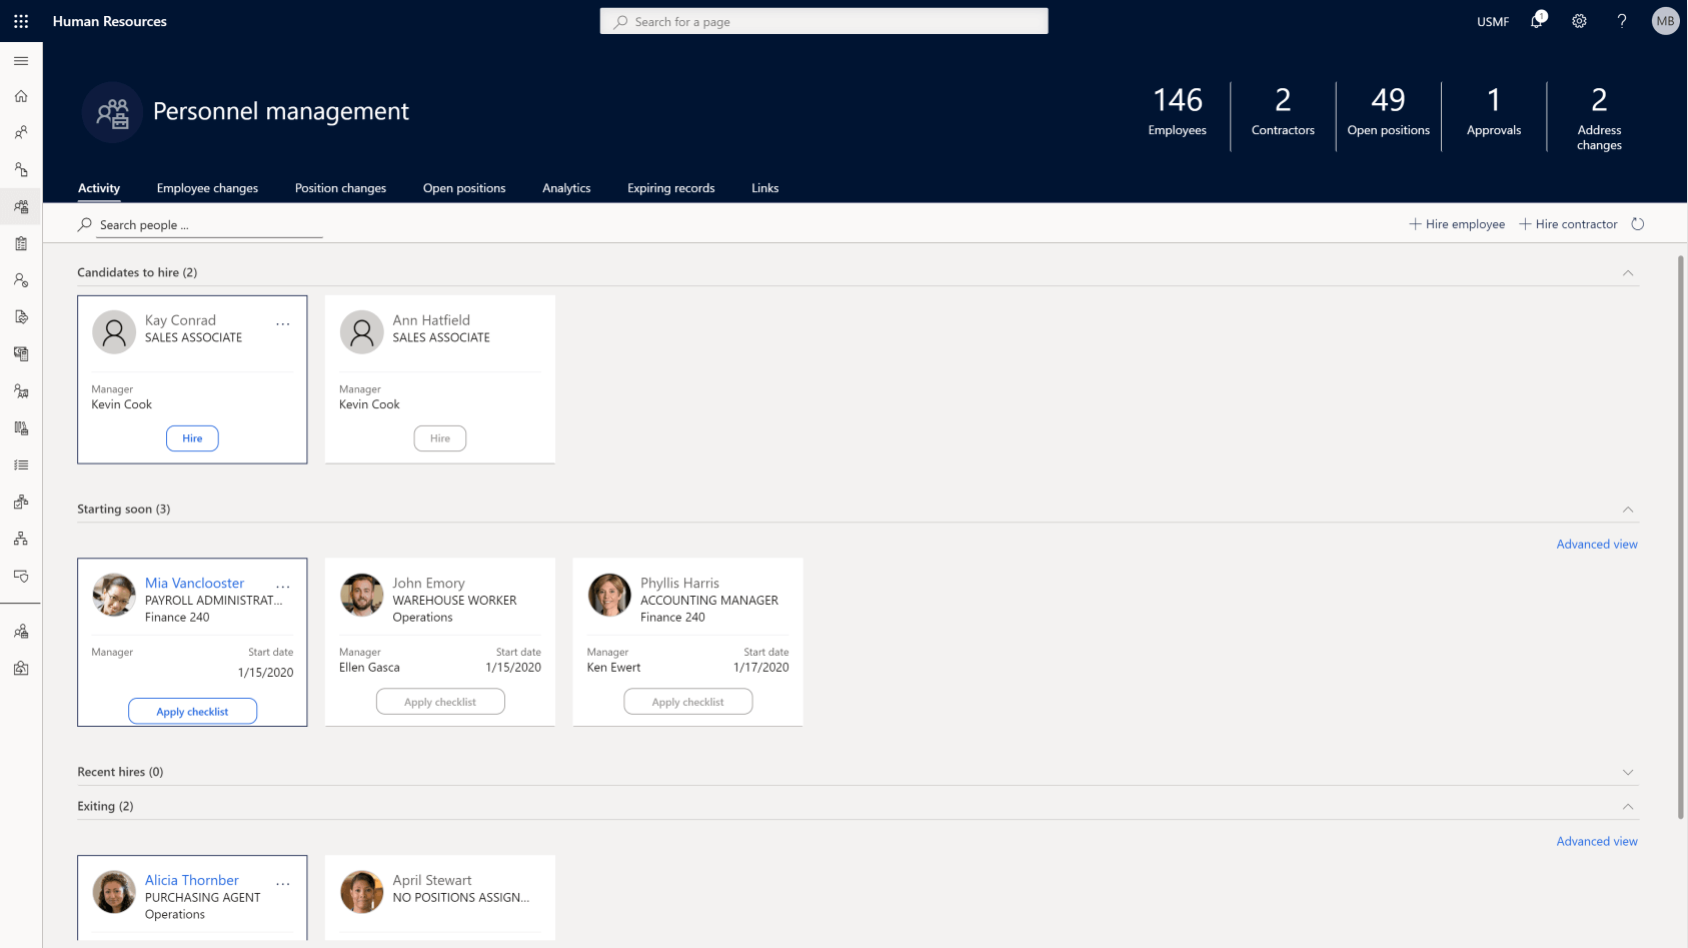 dynamics 365 personnel management